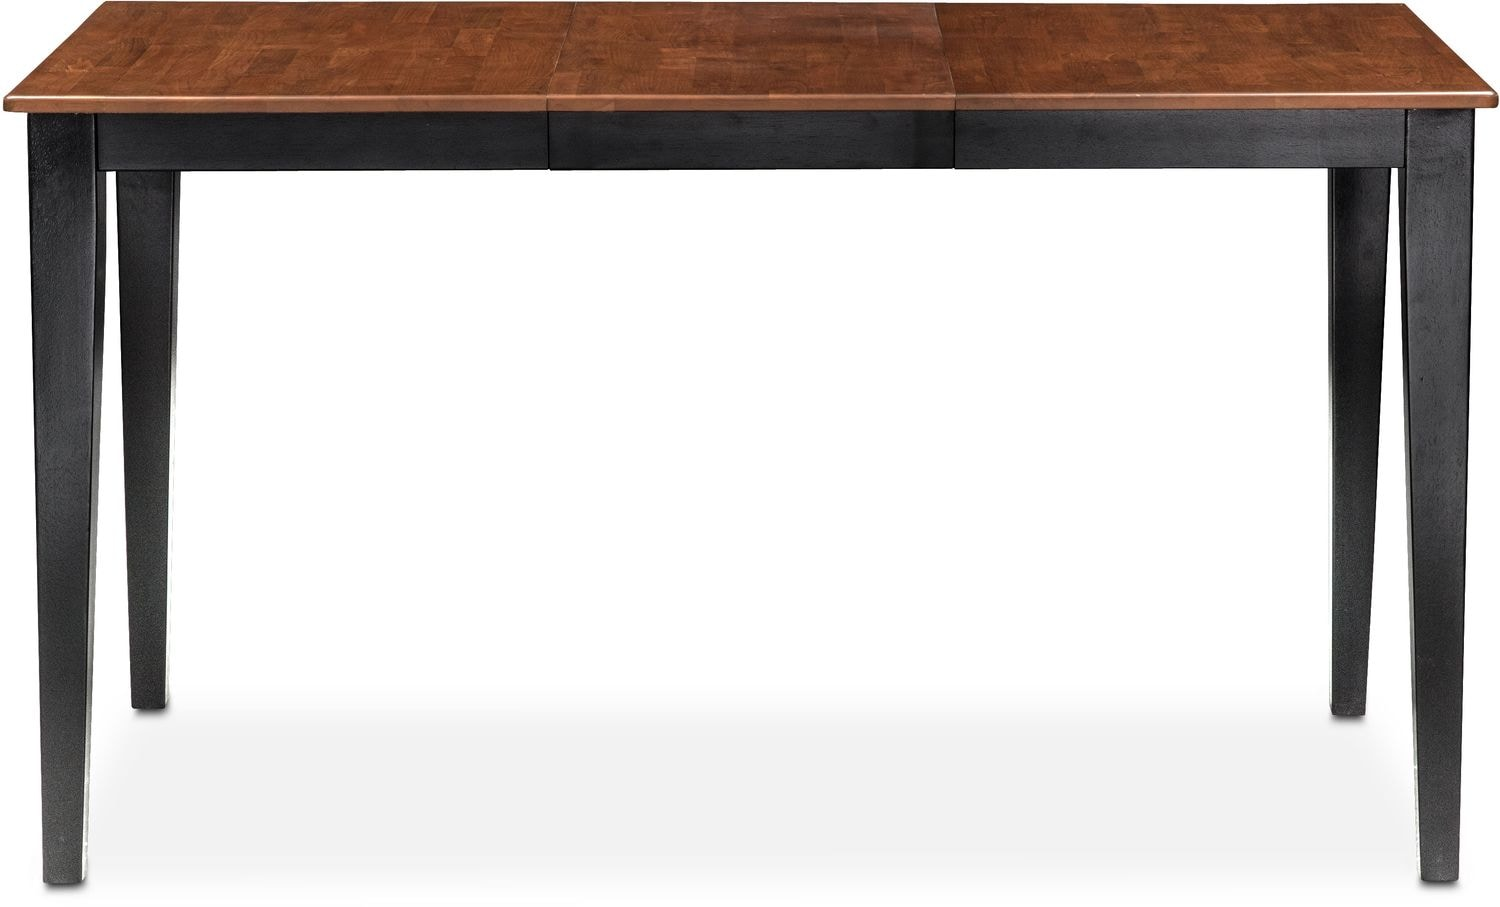 Nantucket counter height table black and cherry american click to change image geotapseo Choice Image